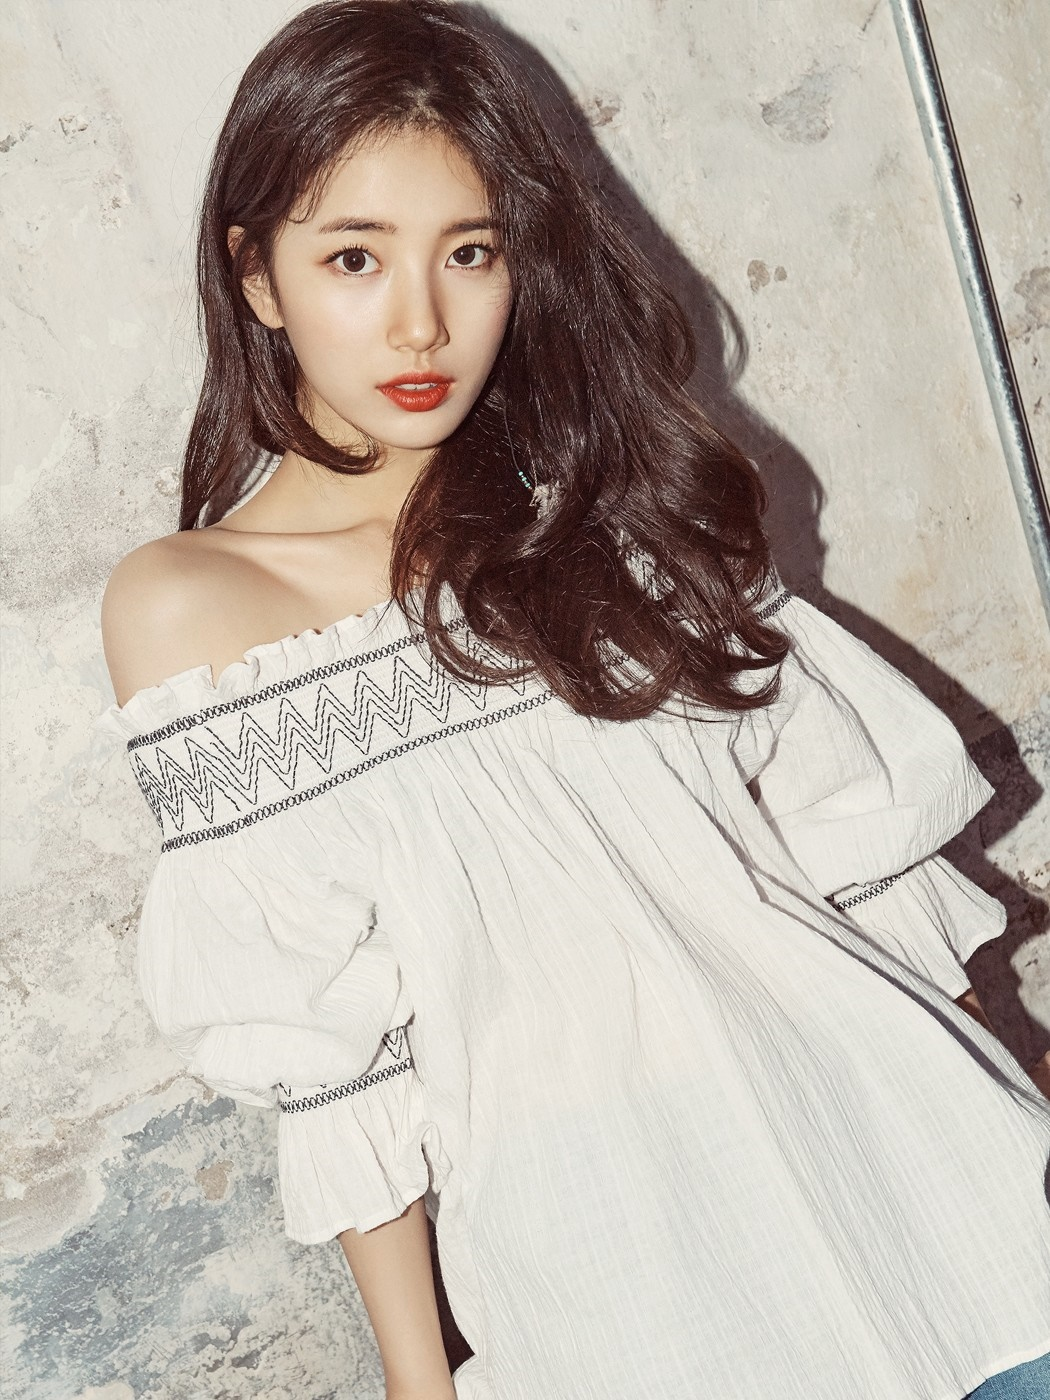 Bae Suzy Android Iphone Wallpaper Asiachan Kpop Jpop Image Board